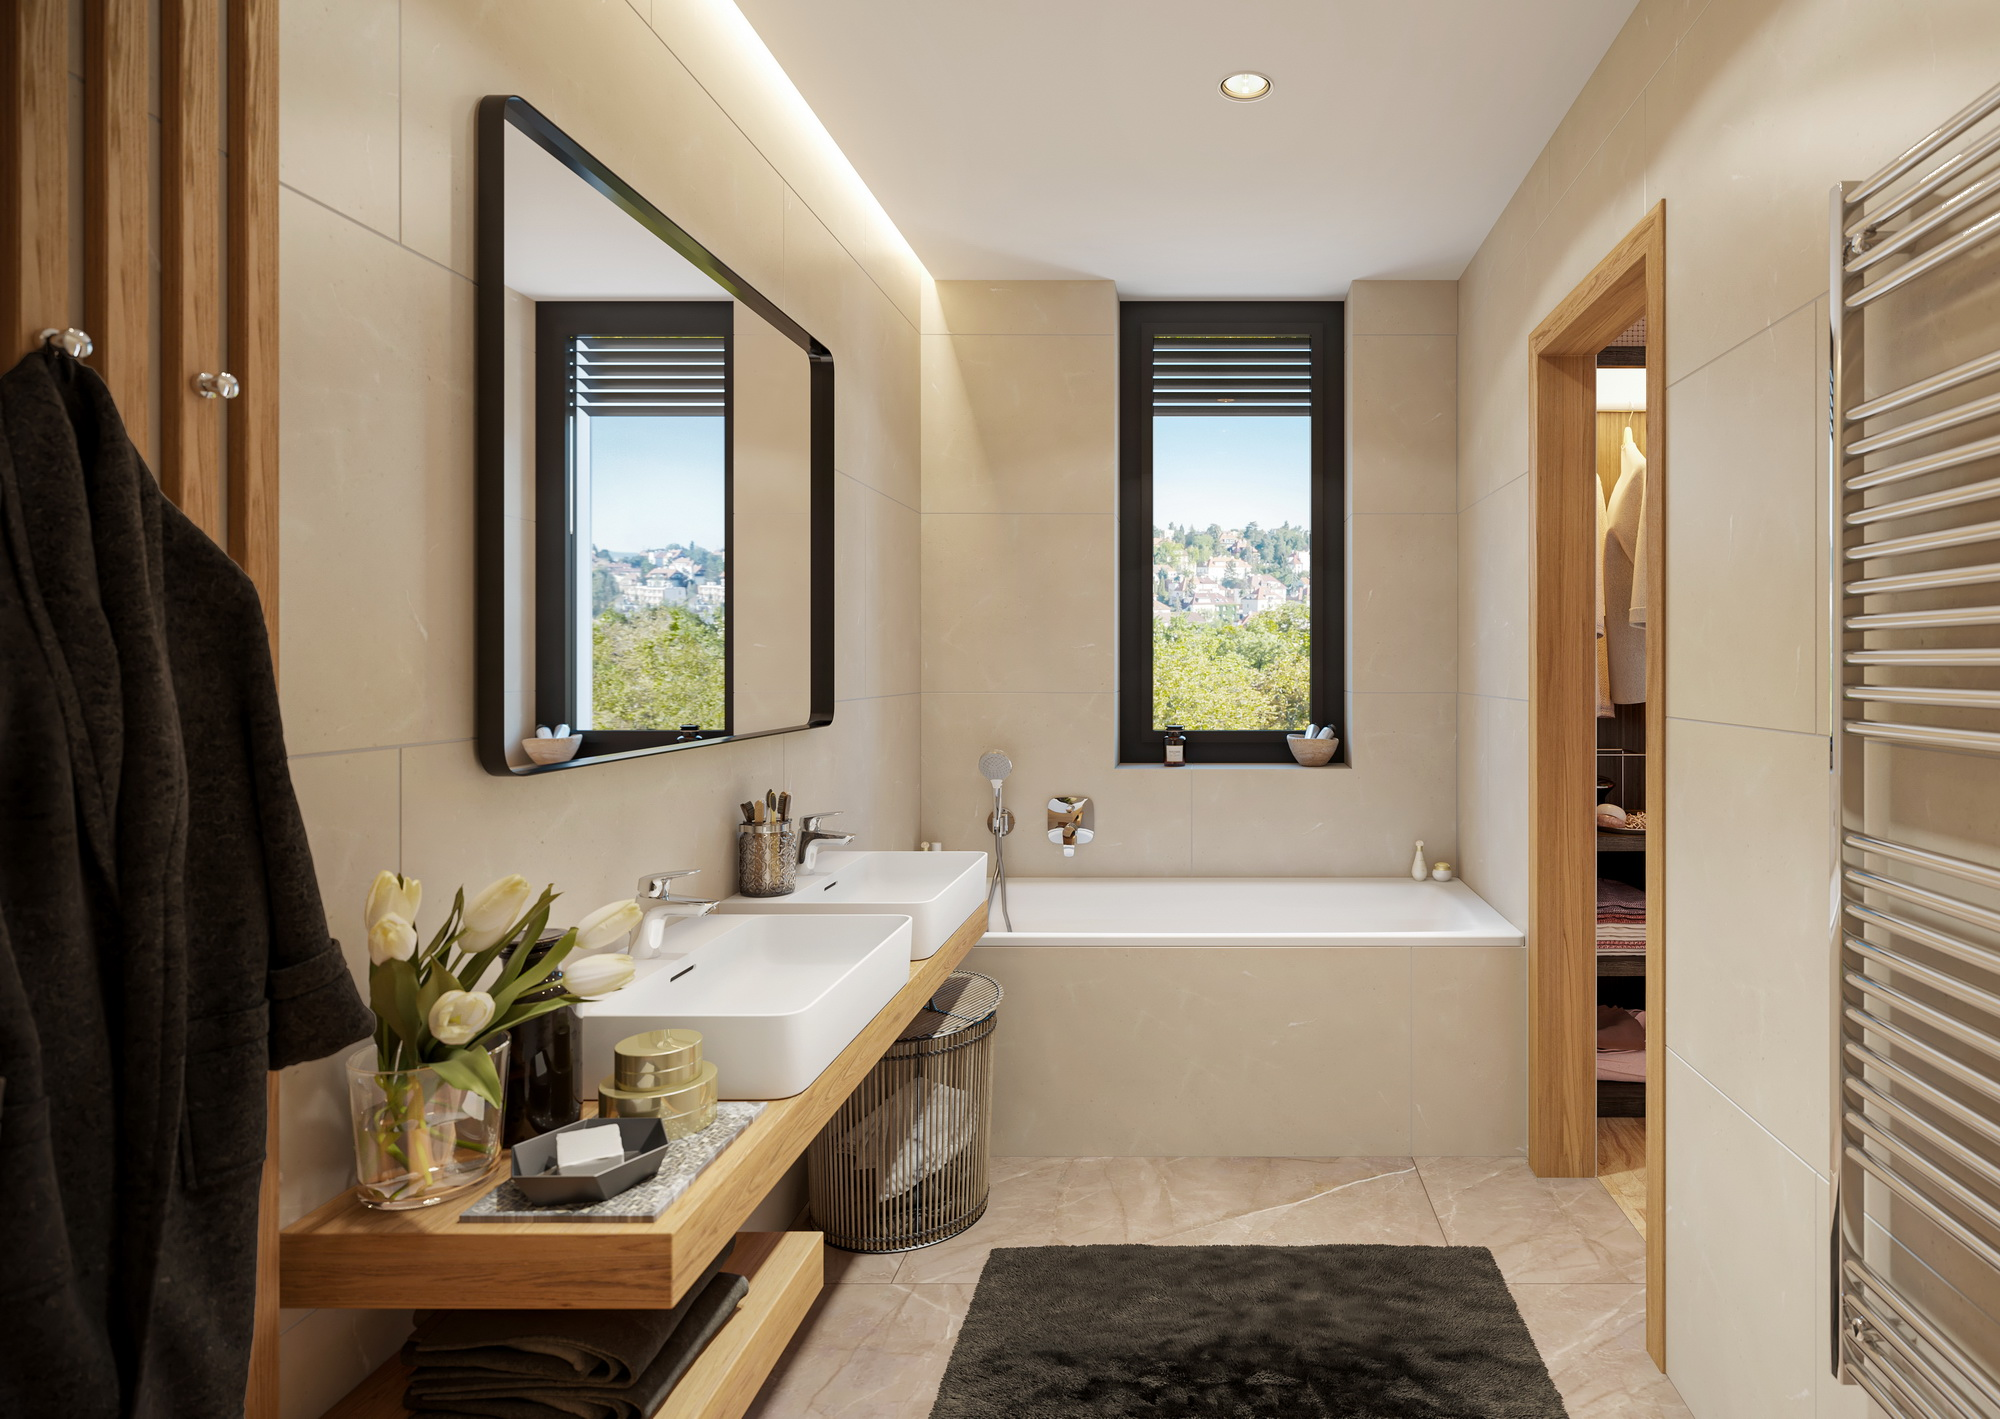 example of standard bathroom fitout